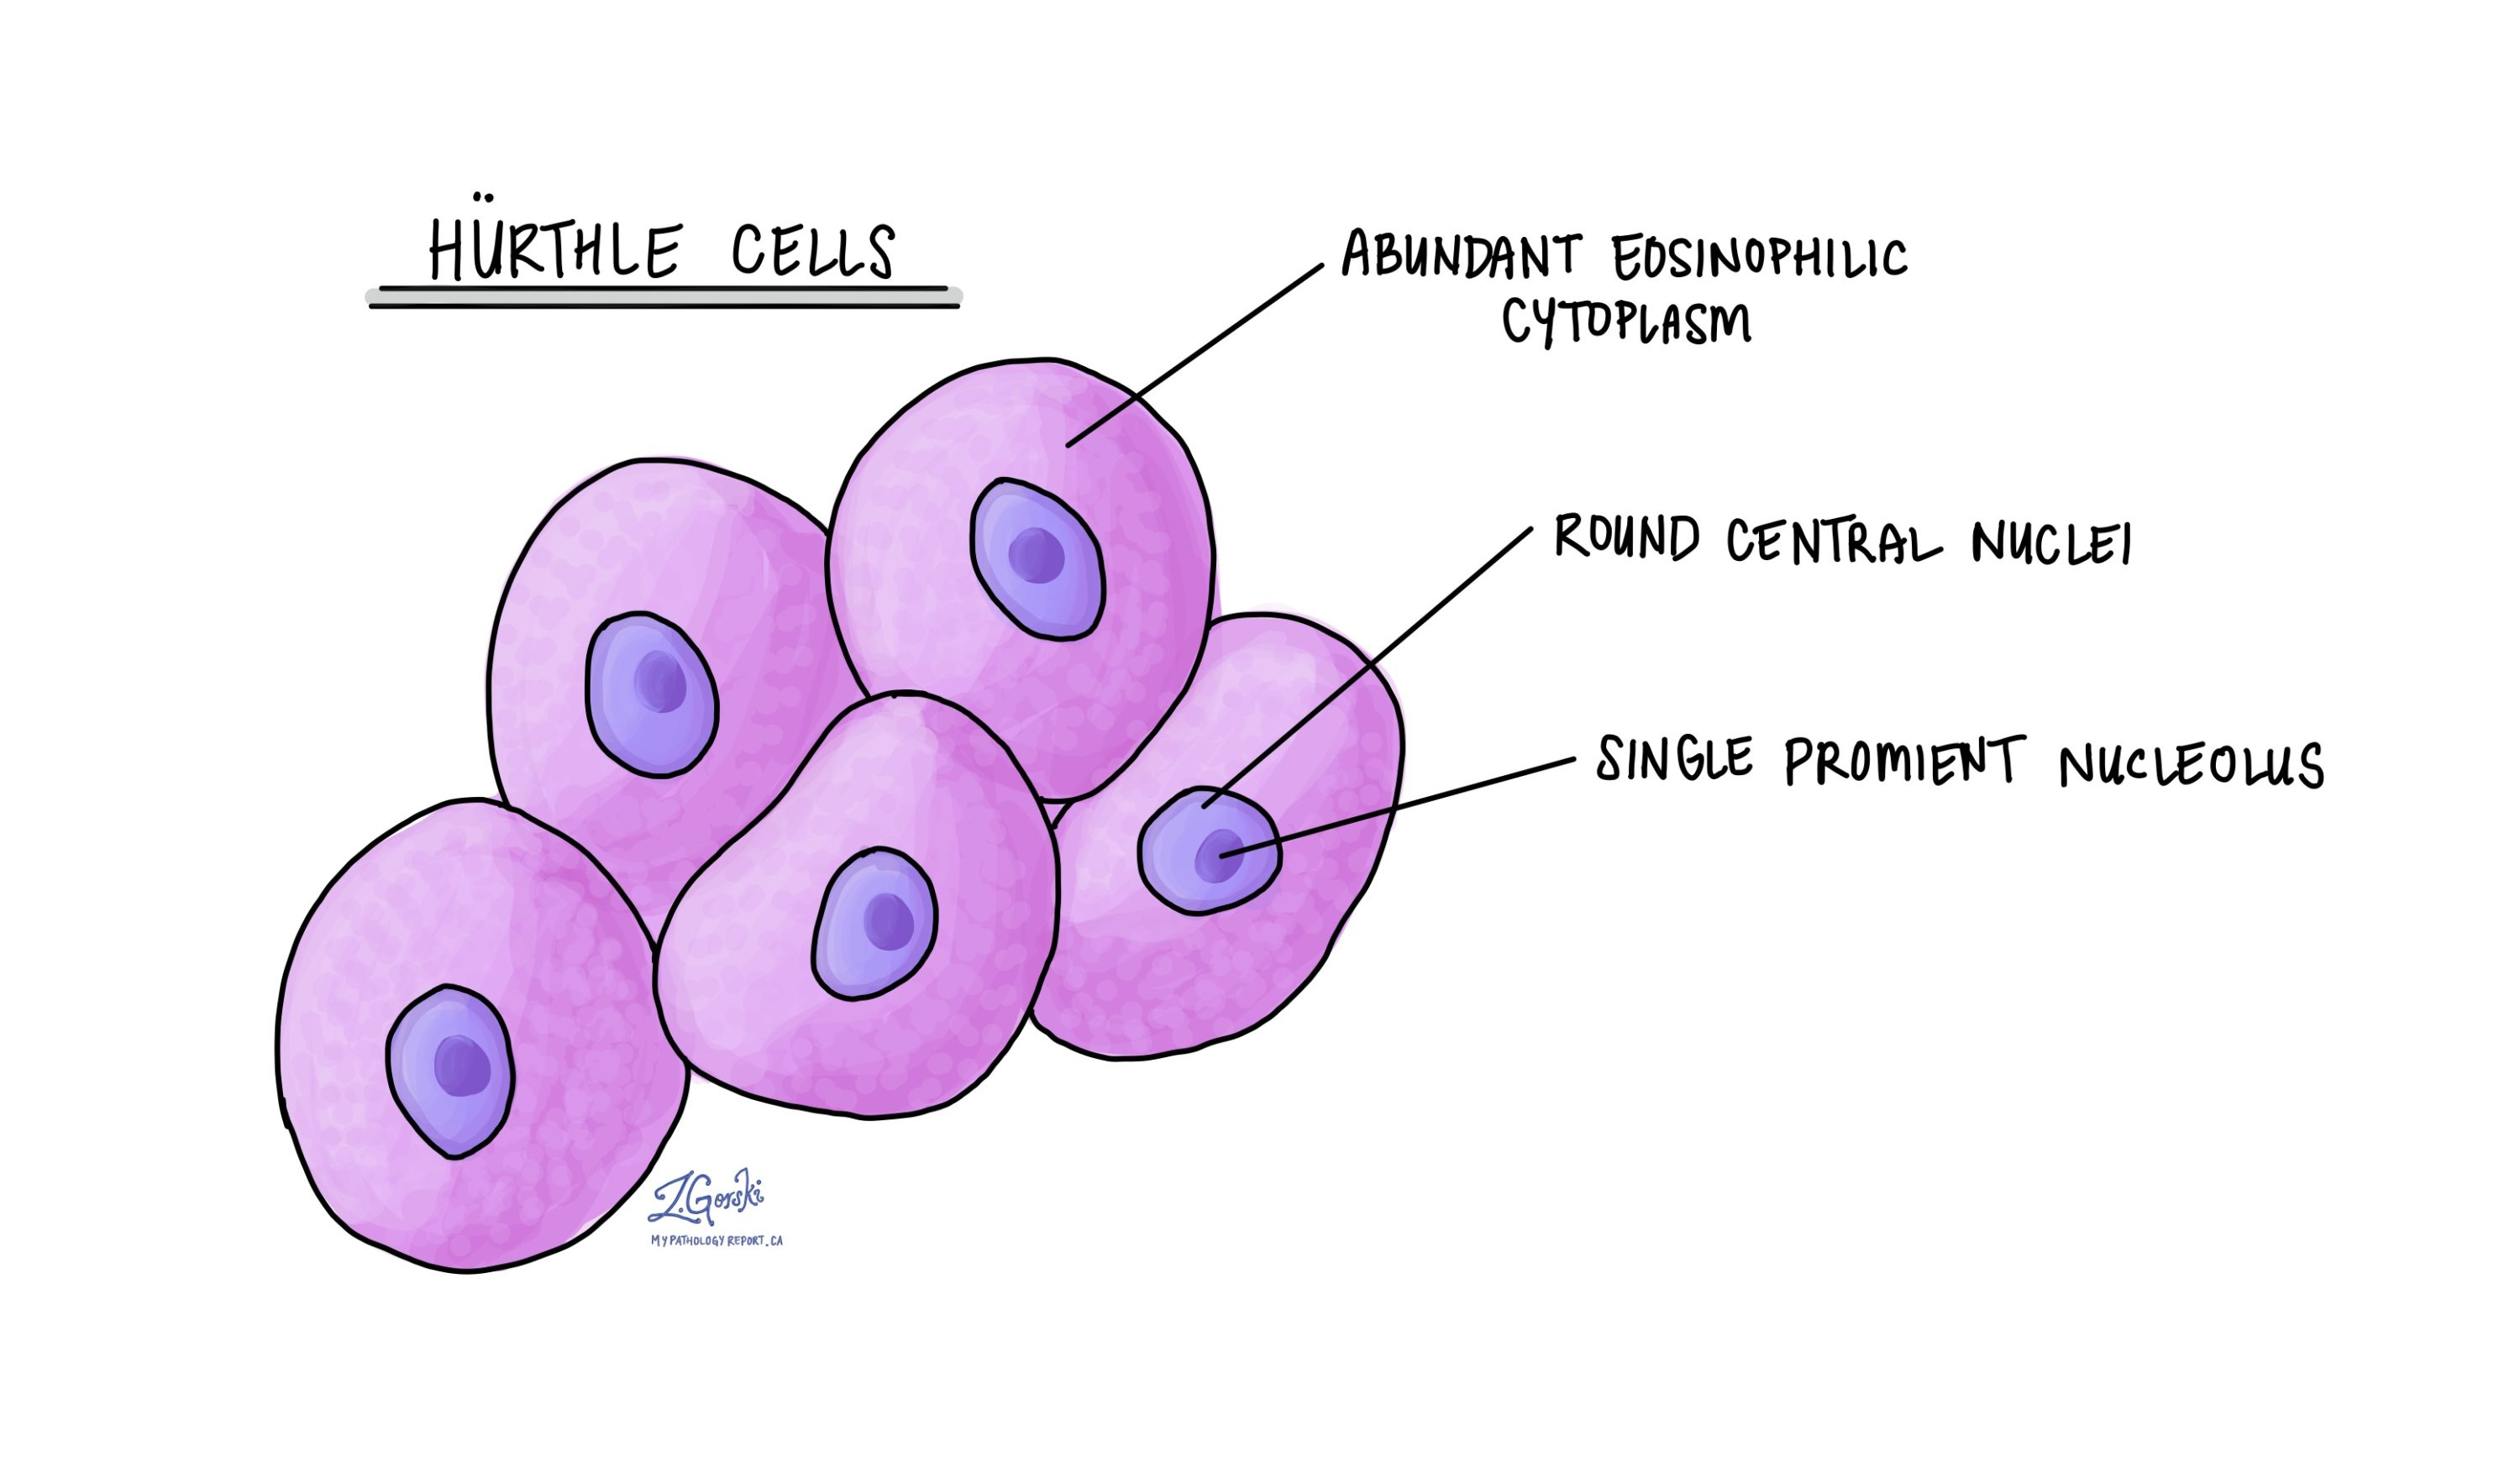 Hurthle cells